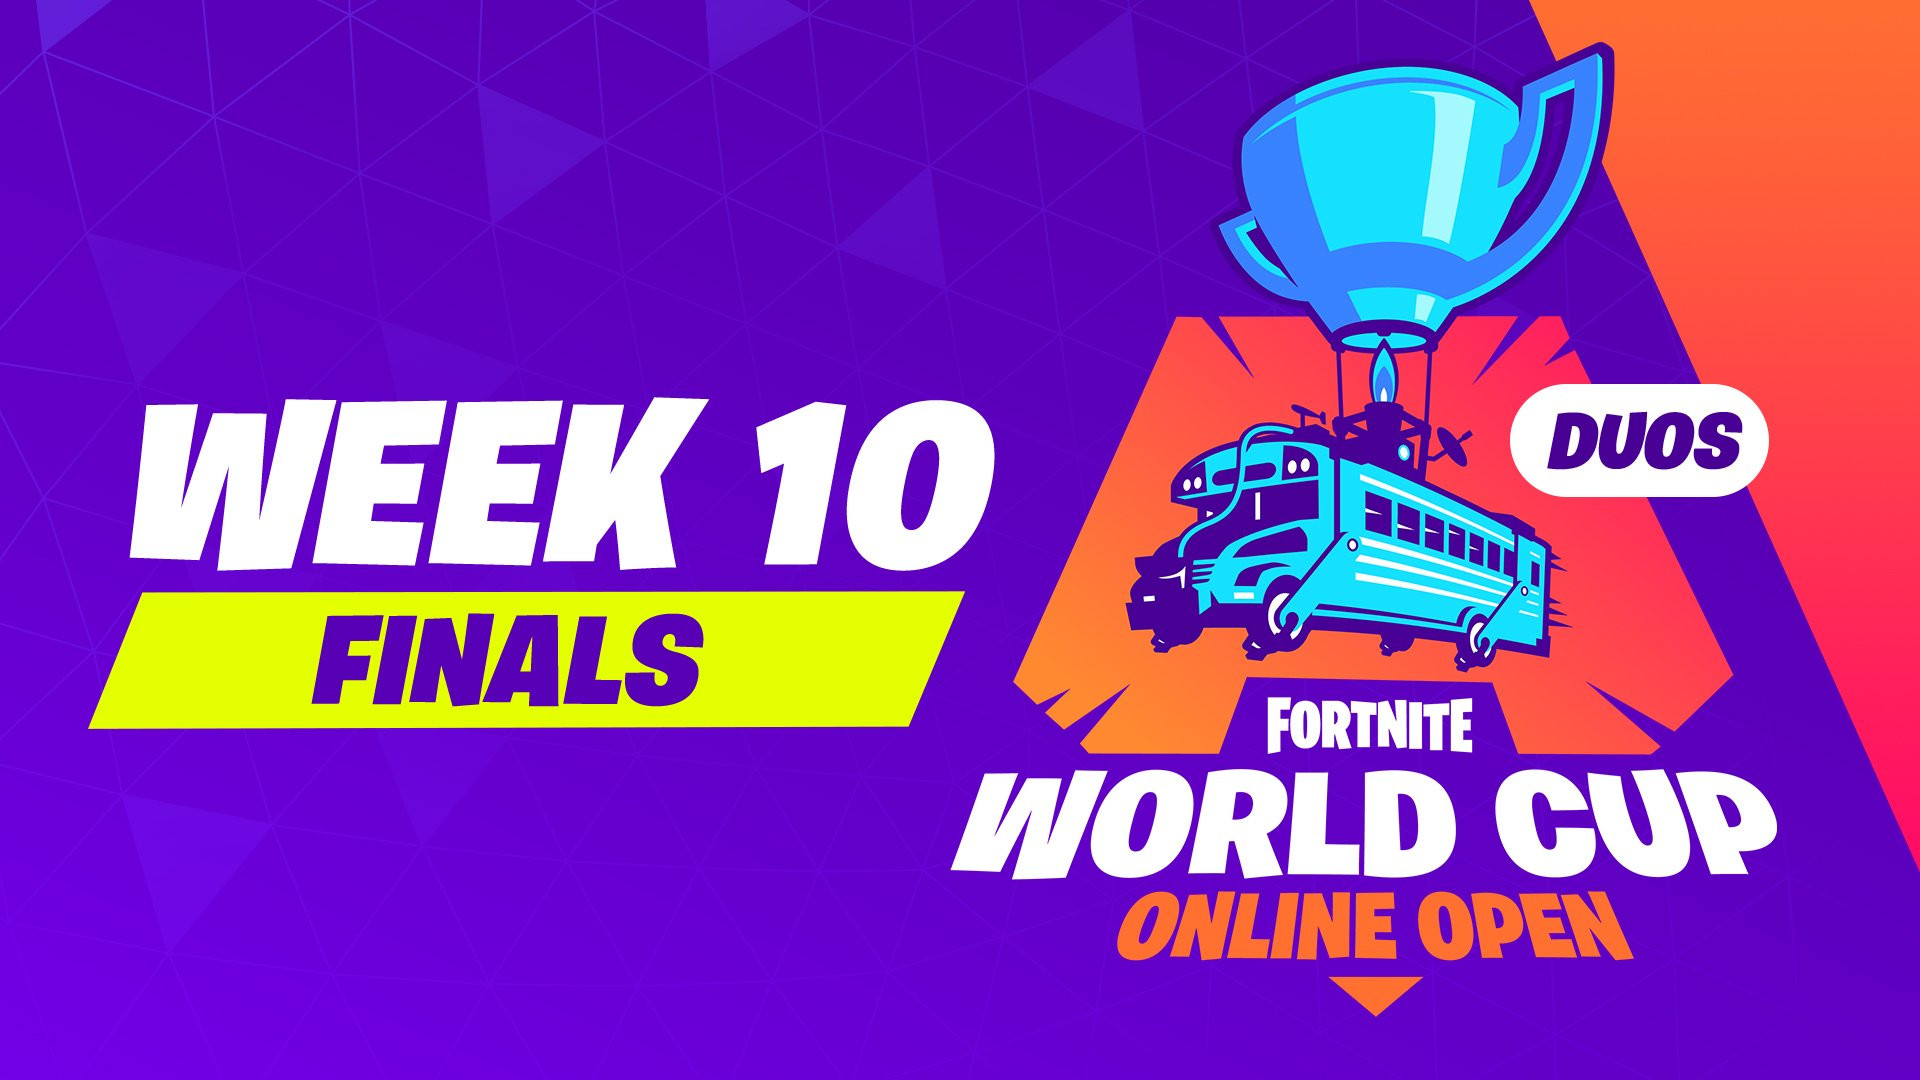 Photo of Fortnite World Cup Qualifier Week 10 Finals NA East Duos Top 10 Standings